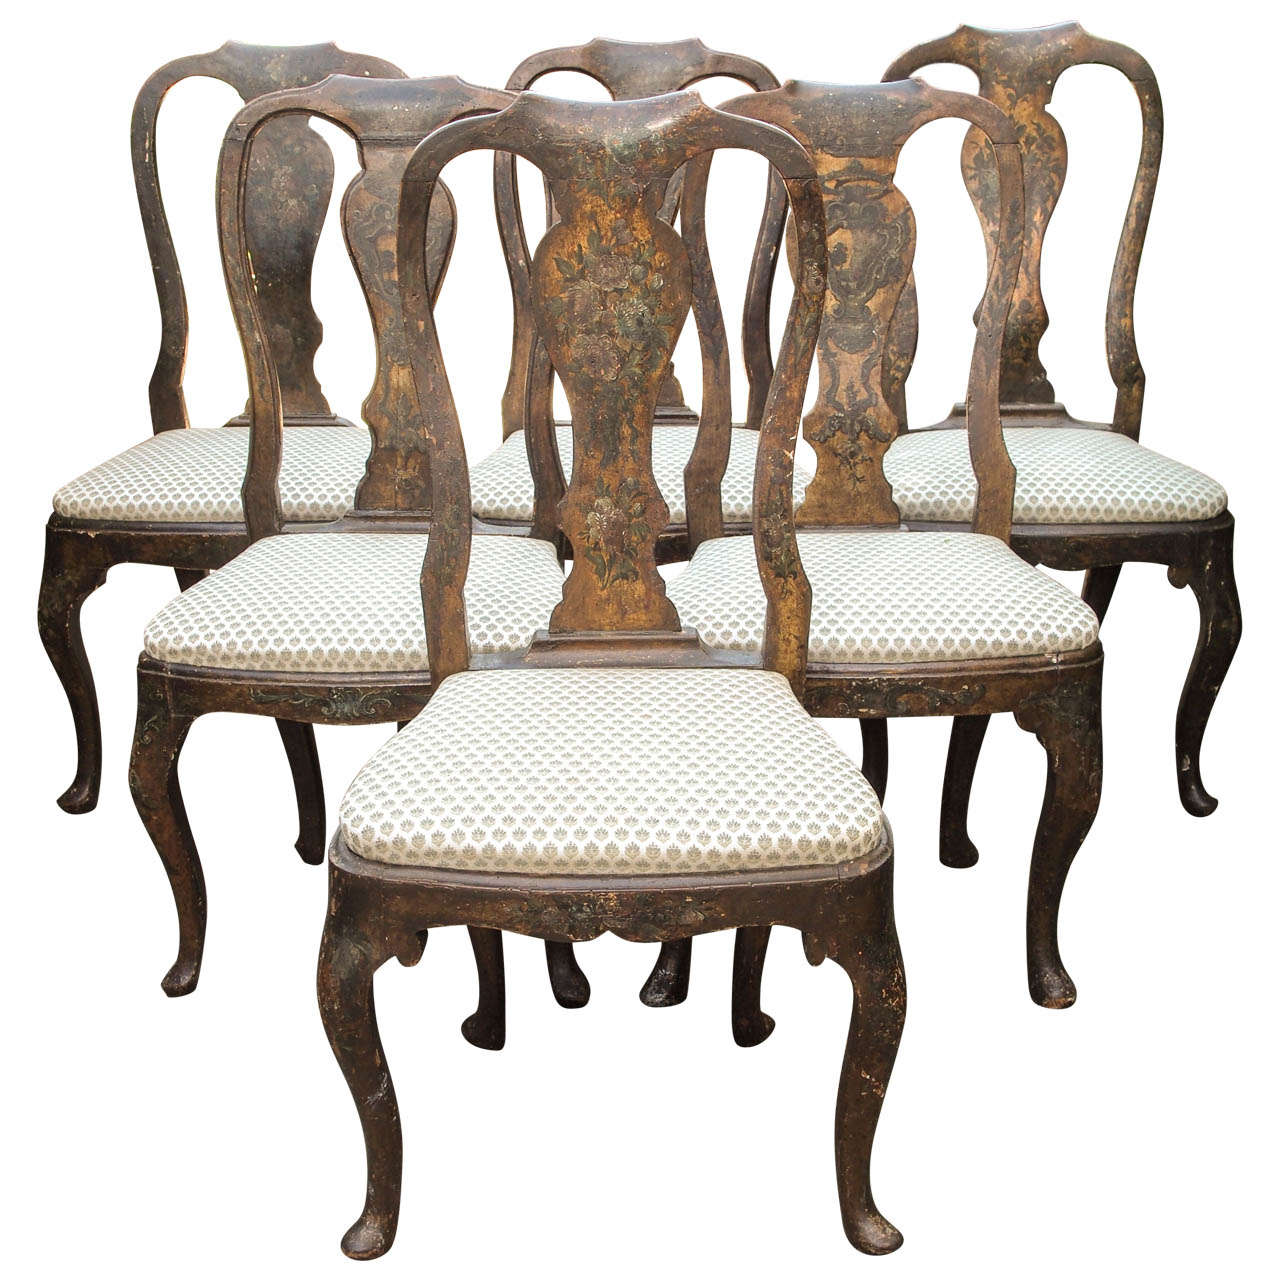 Charmant Set Of Six 18th Century Hand Painted Italian, Lucca Vase Splat Back Chairs